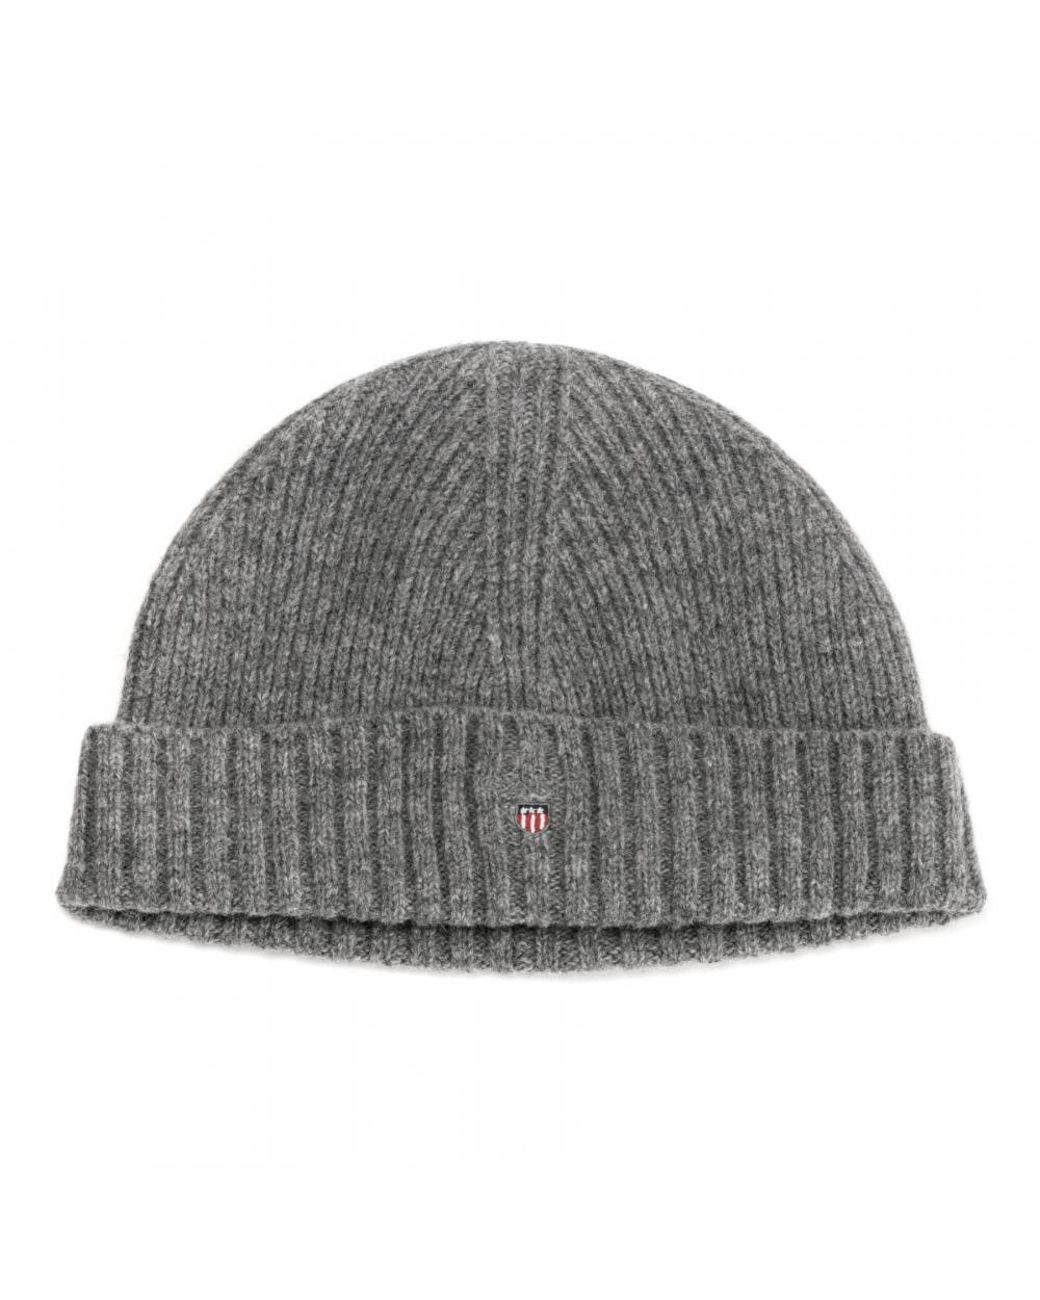 c806aa42373 GANT Wool Lined Mens Beanie in Gray for Men - Save 40% - Lyst